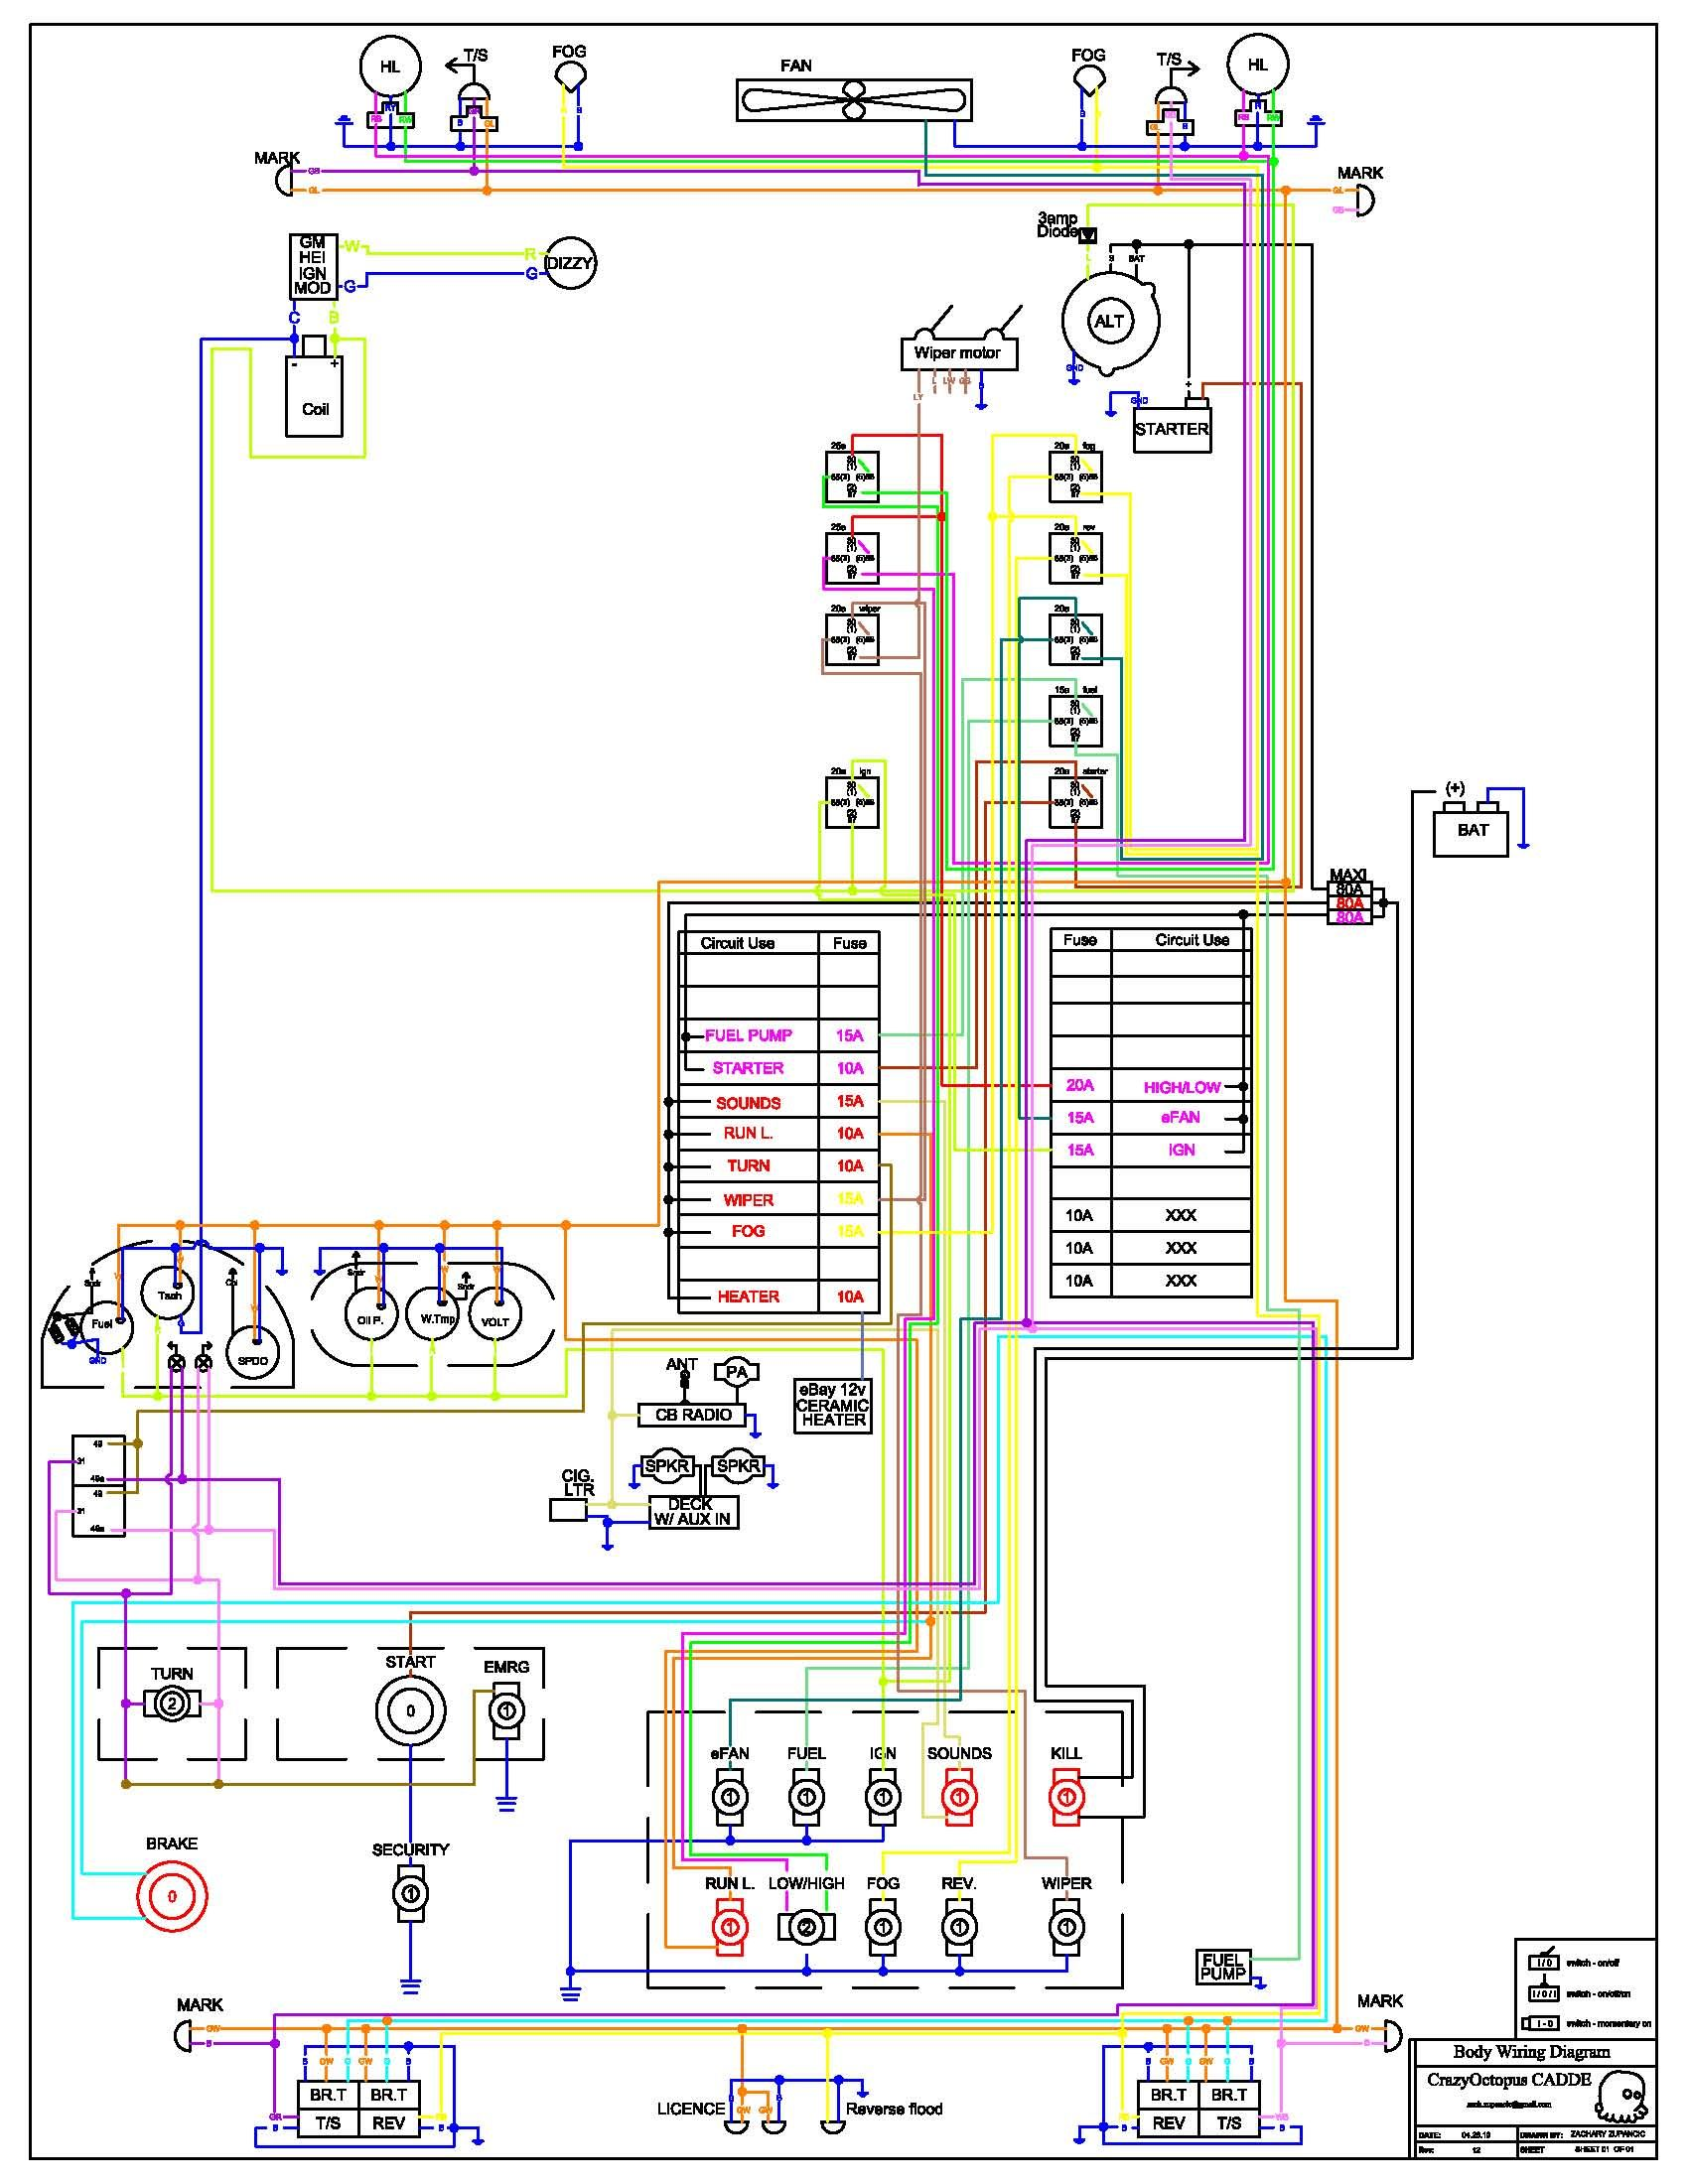 hight resolution of  f0a9ebc3a4a2529096f135d5fec5faaa race car wiring diagrams diagram pinterest cars racing mower wiring diagram at cita asia